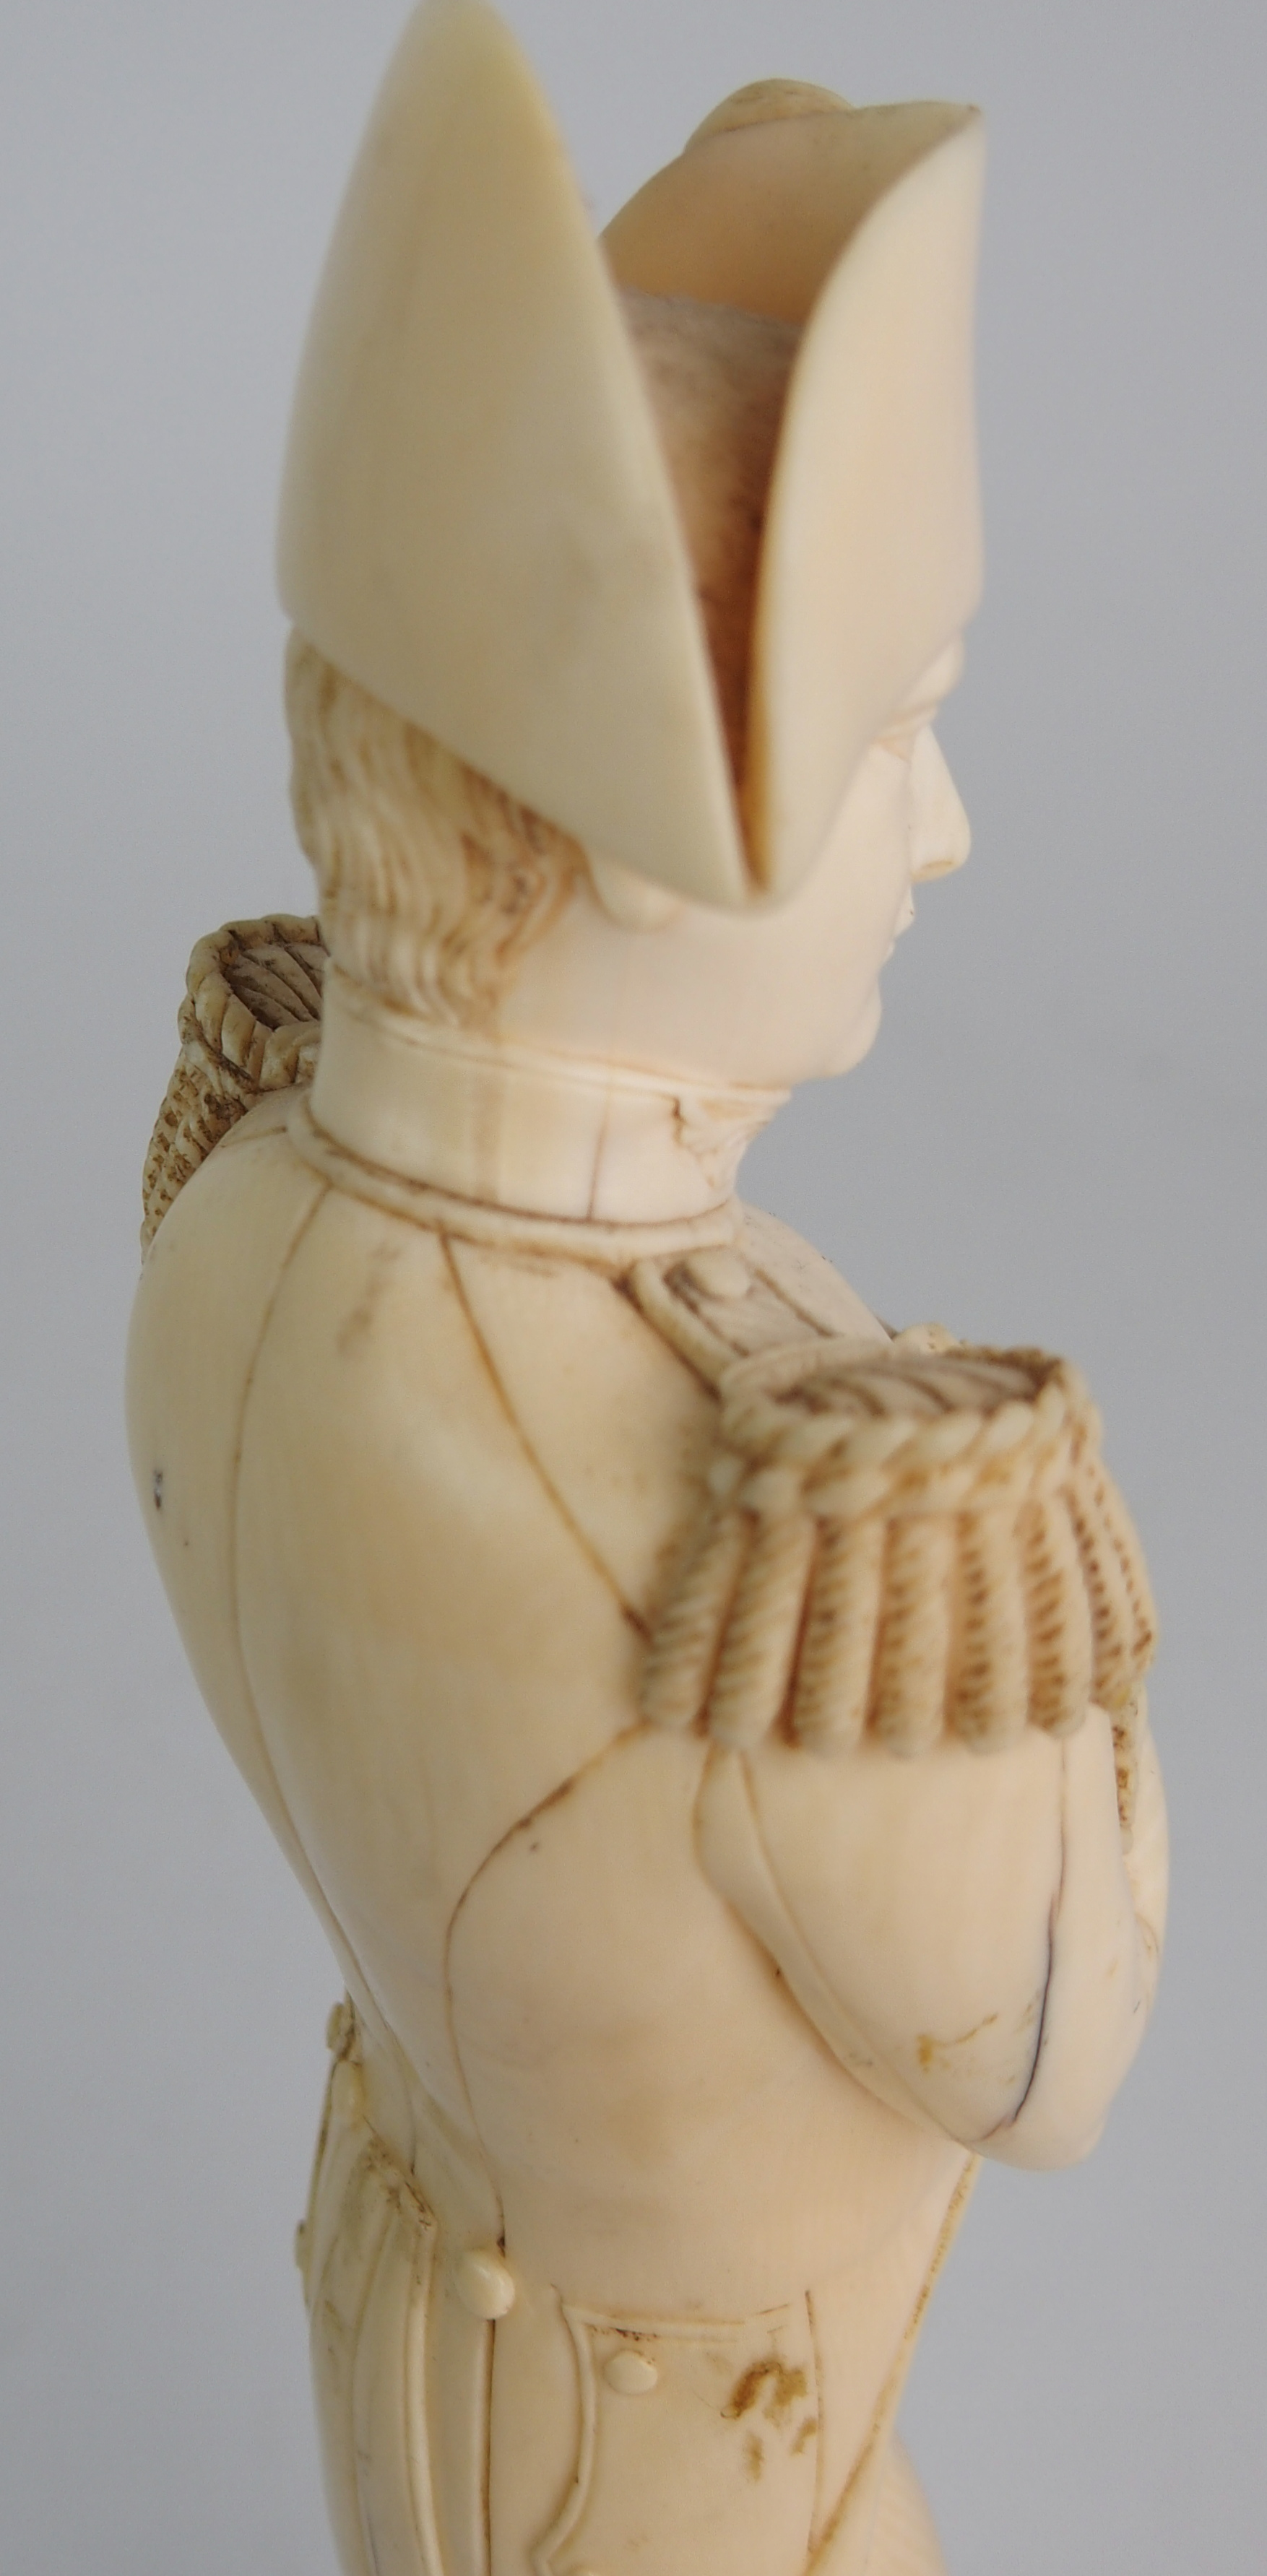 A LATE 19TH/EARLY 20TH CENTURY CARVED IVORY MODEL OF NAPOLEON in uniform with crossed arms, on - Image 8 of 9